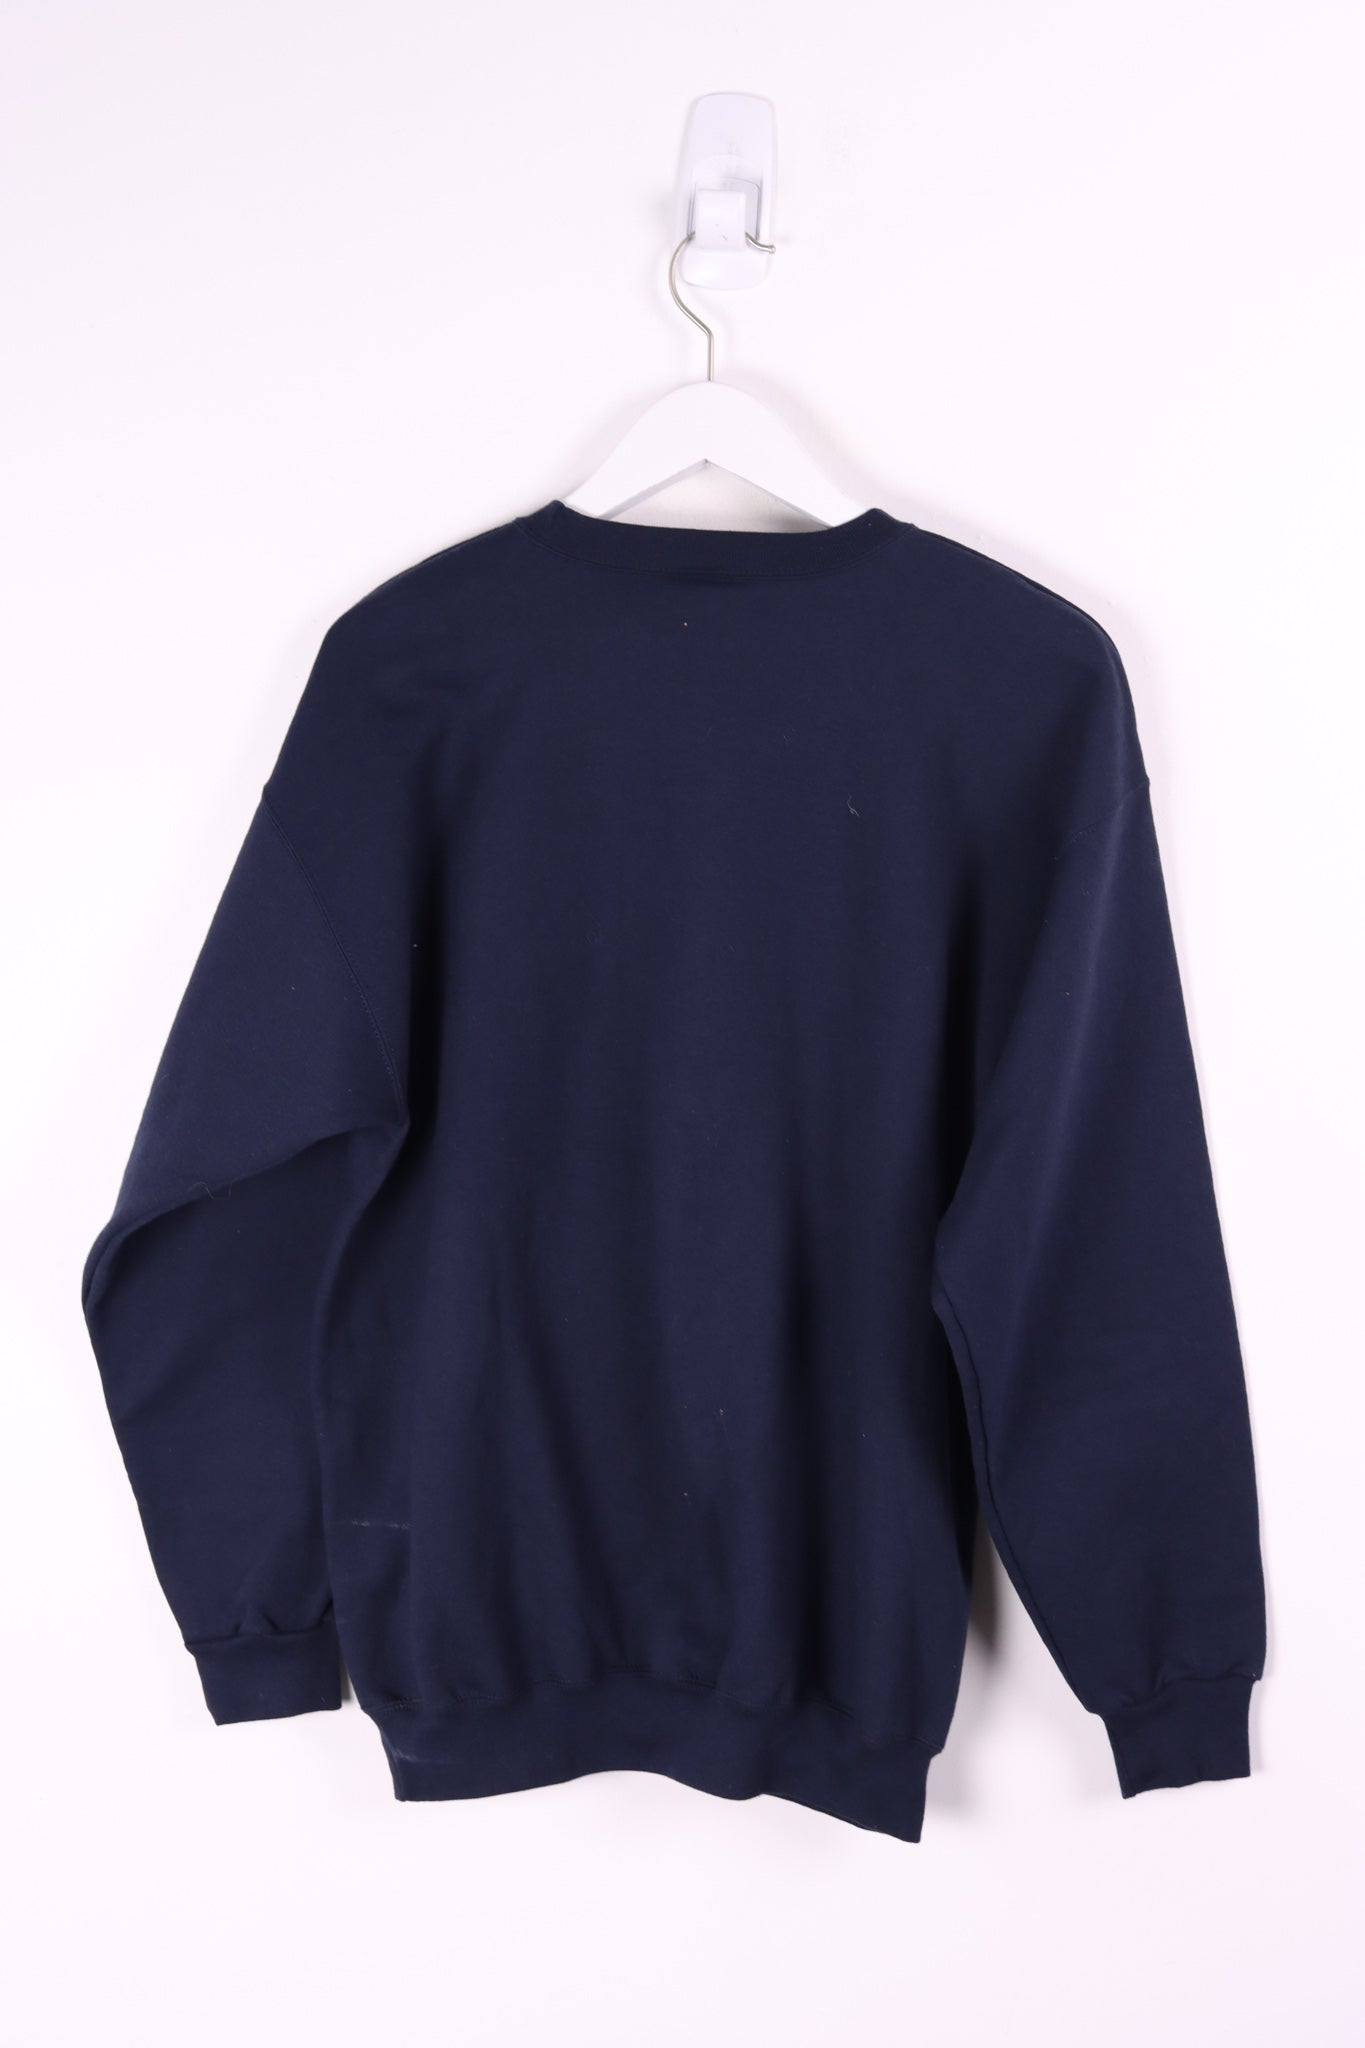 6384f210 Guess x Sean Wotherspoon Farmers Market Crewneck Sweater *M ...